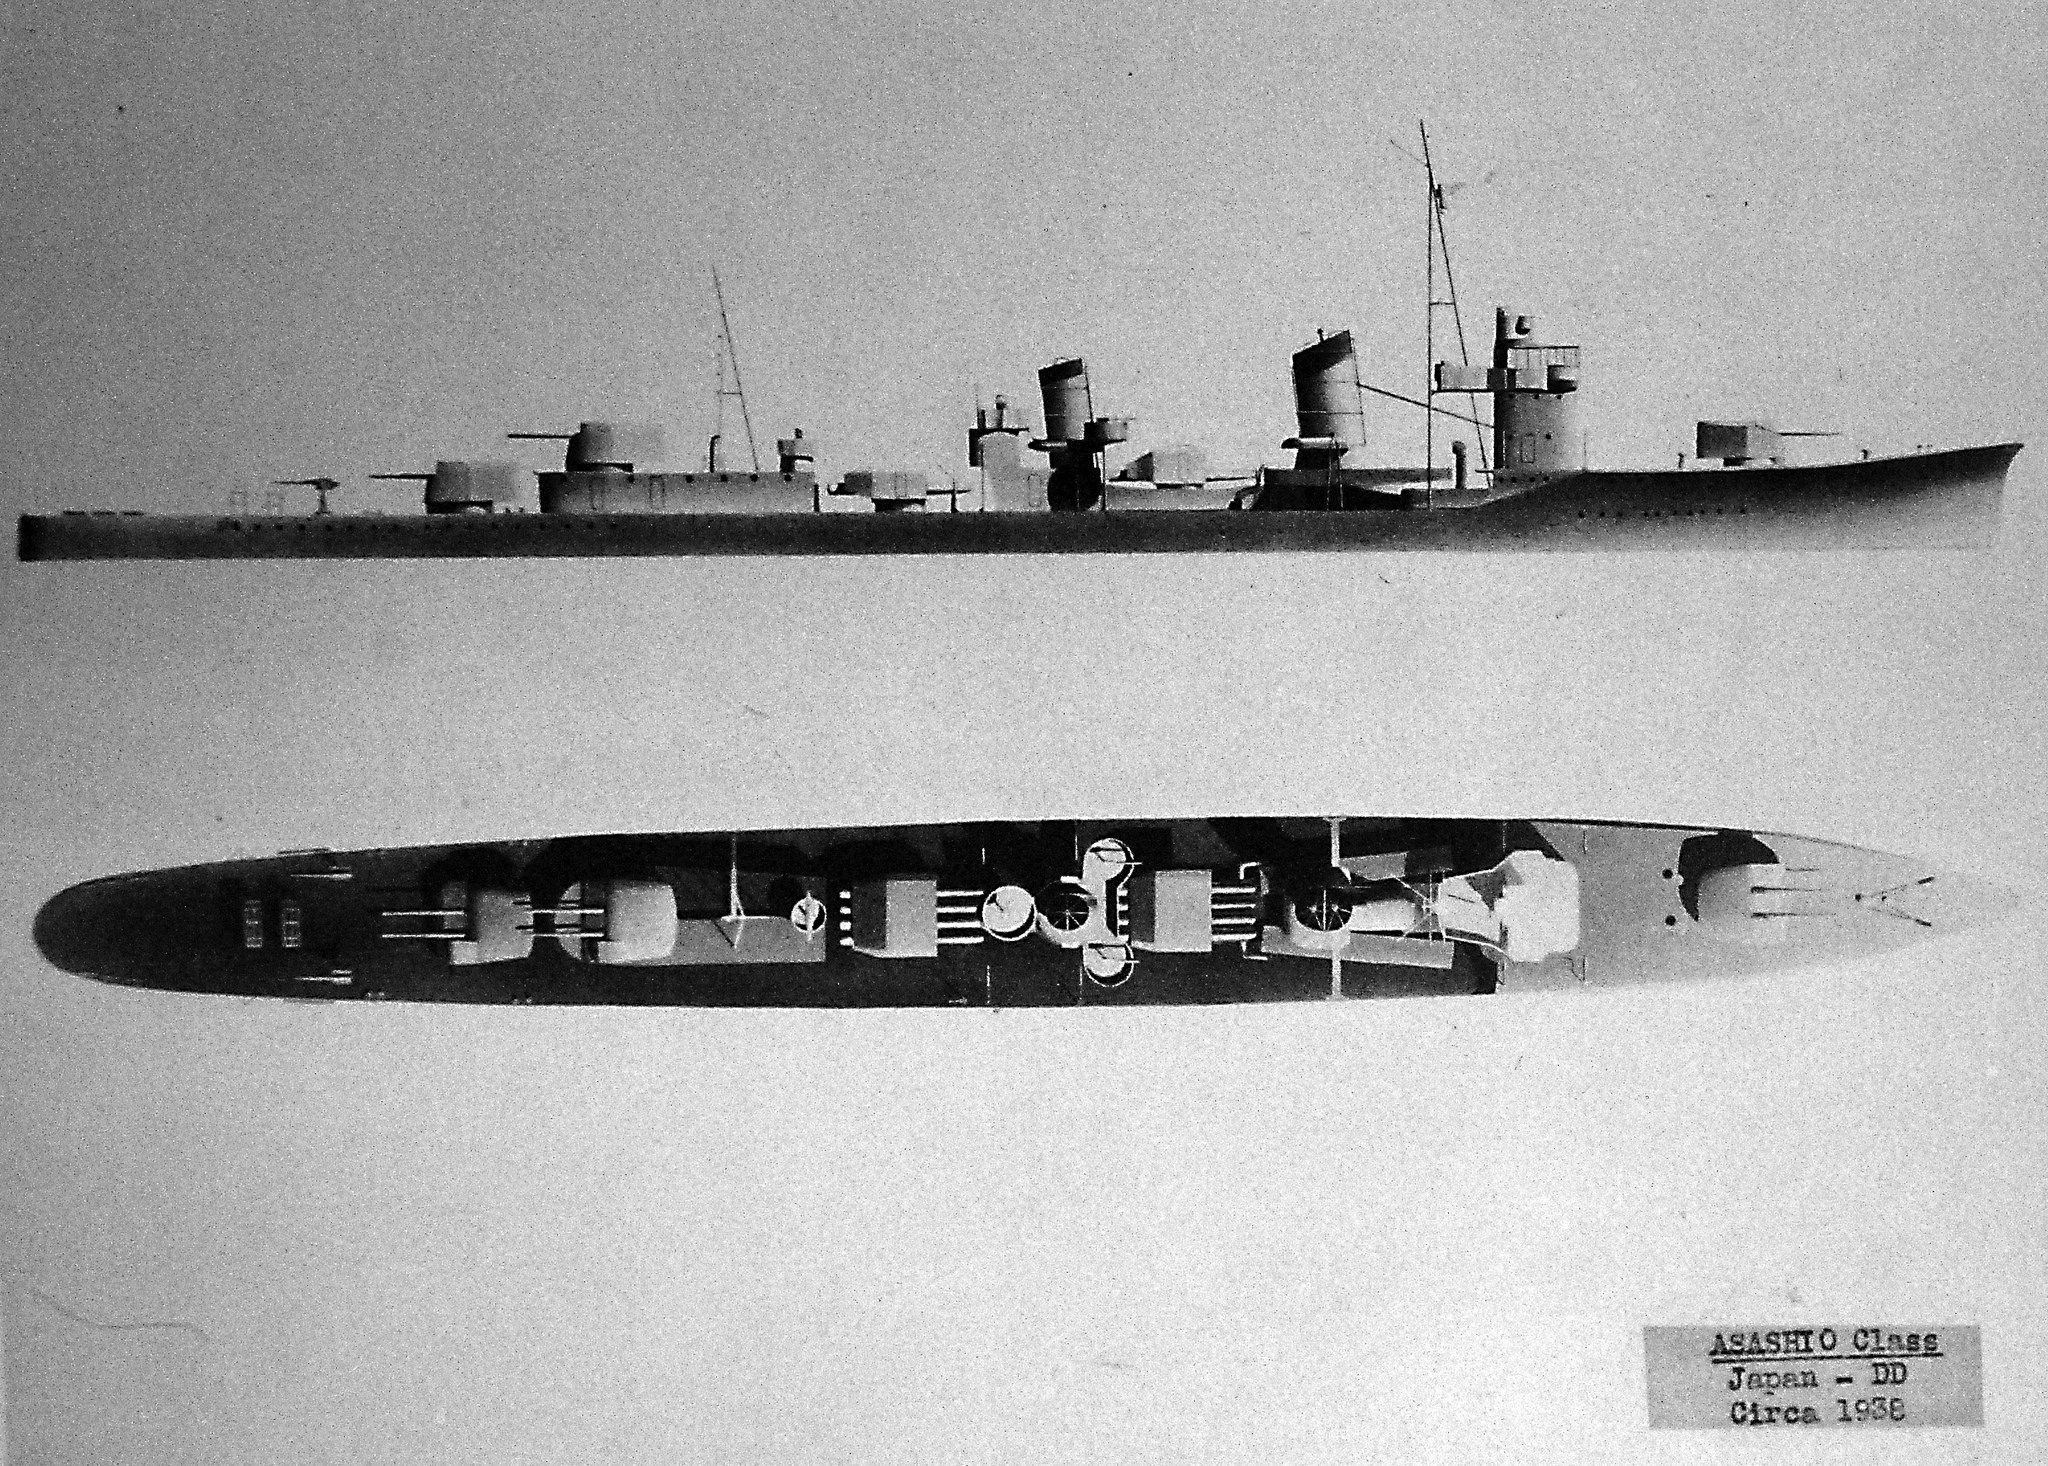 Lot-2406-21: Japanese destroyer Asashio class, diagrams, 1938. Halftone copy from the files of the Department of Naval Intelligence, June 1943. Courtesy of the Library of Congress. (2016/05/12).